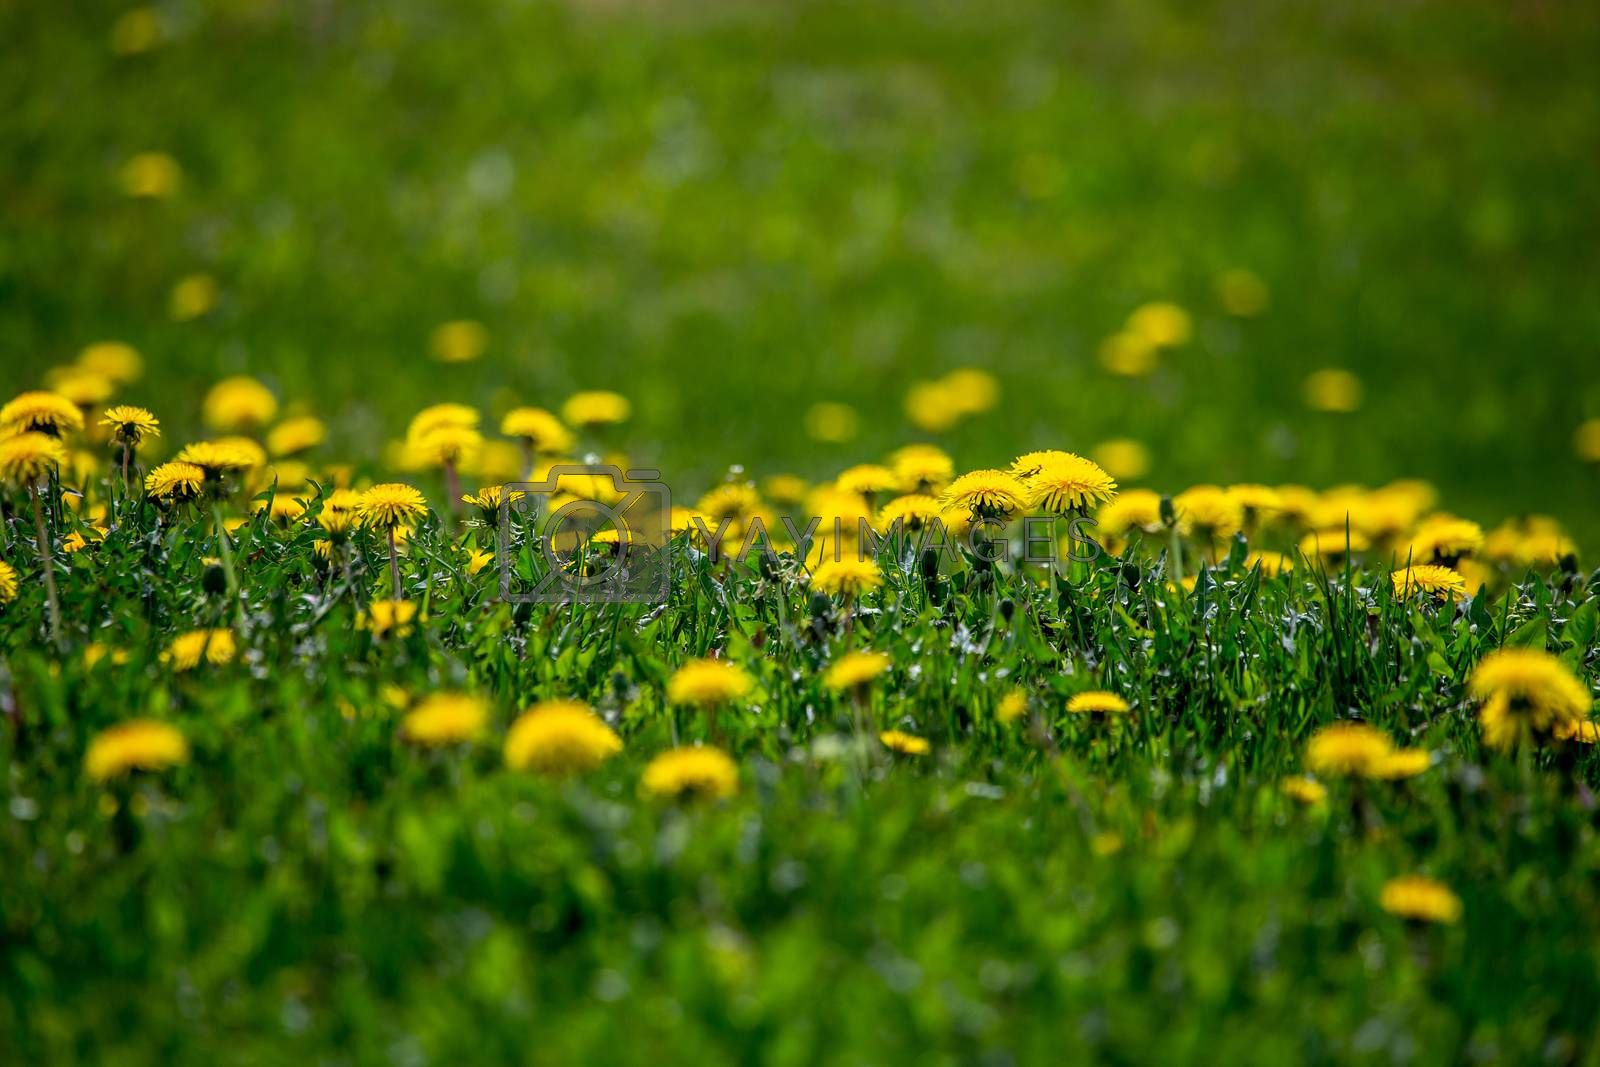 Blooming yellow dandelions among green grass on meadow in early summer. Green meadow covered with yellow dandelions at spring. Background of green field with bright yellow flowers